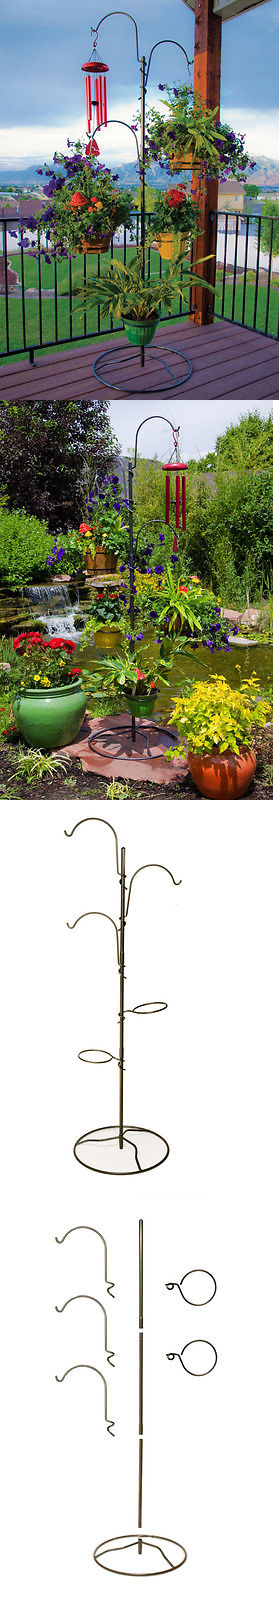 Plant Stands 29514: Hanging Plant Holder Indoor Pots Baskets Heavy Duty  Stand Outdoor Flower Patio